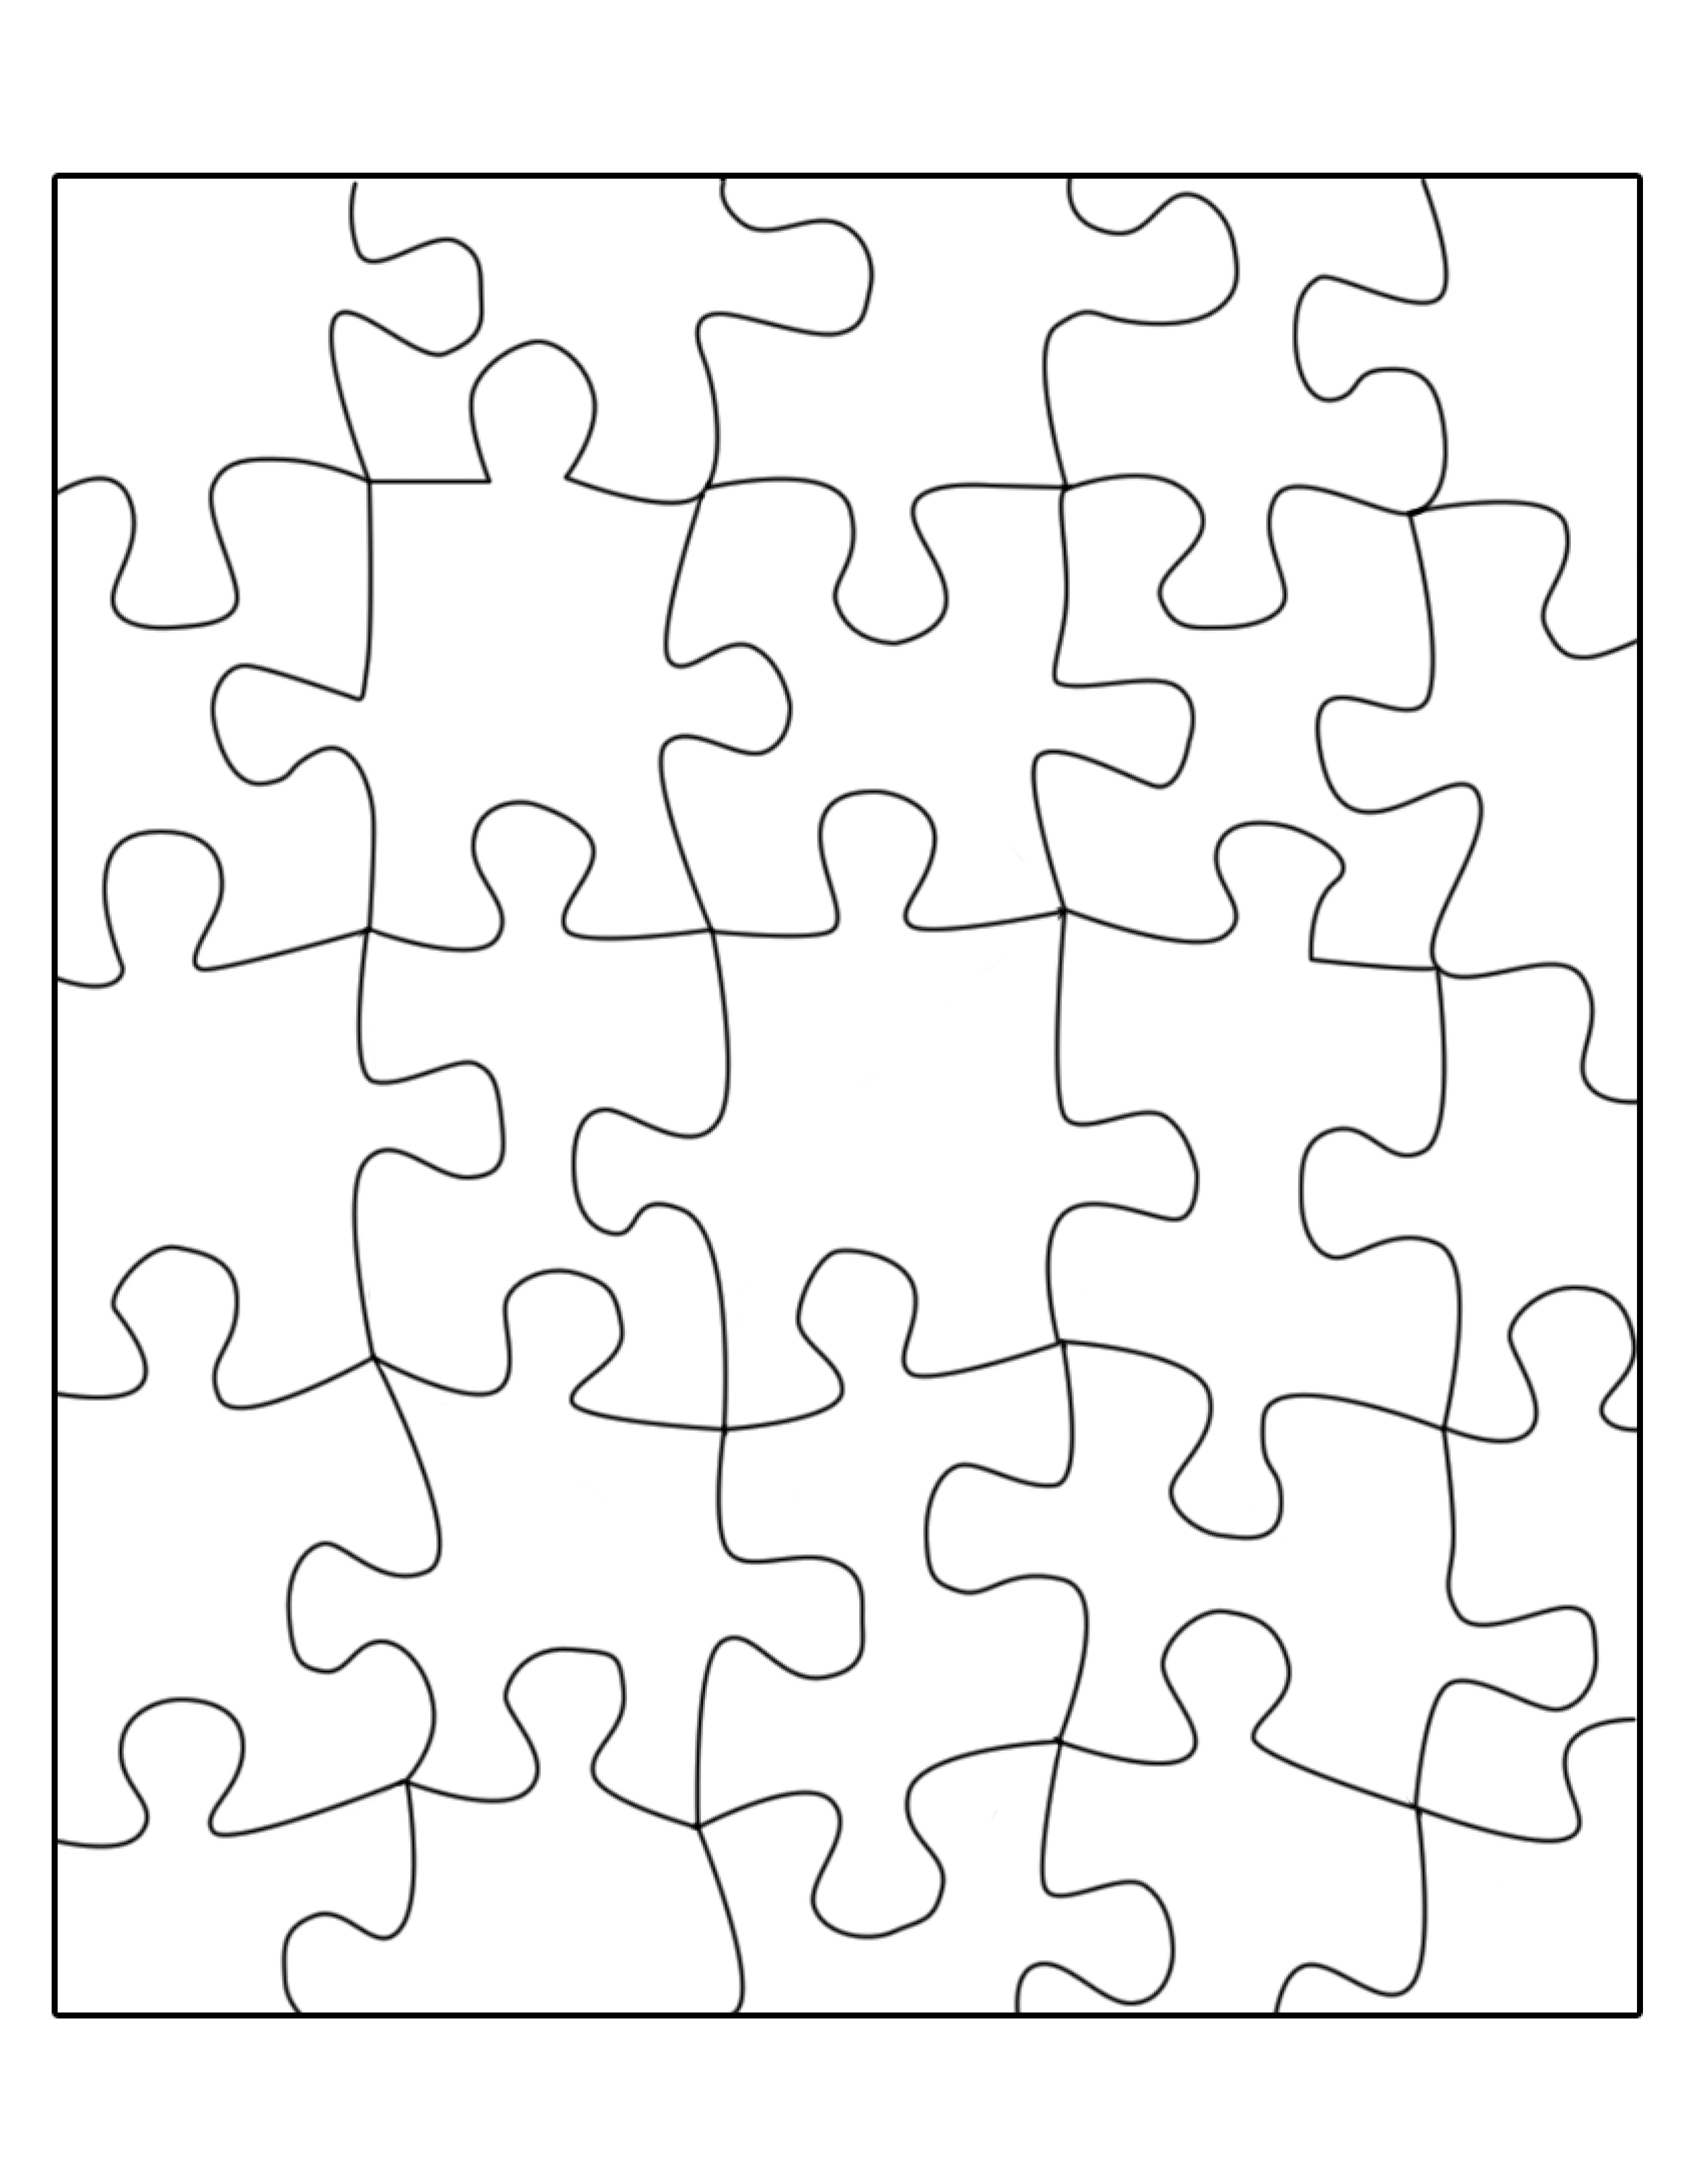 Blank Jigsaw Puzzle Template Best Of Printable Puzzle Pieces Template